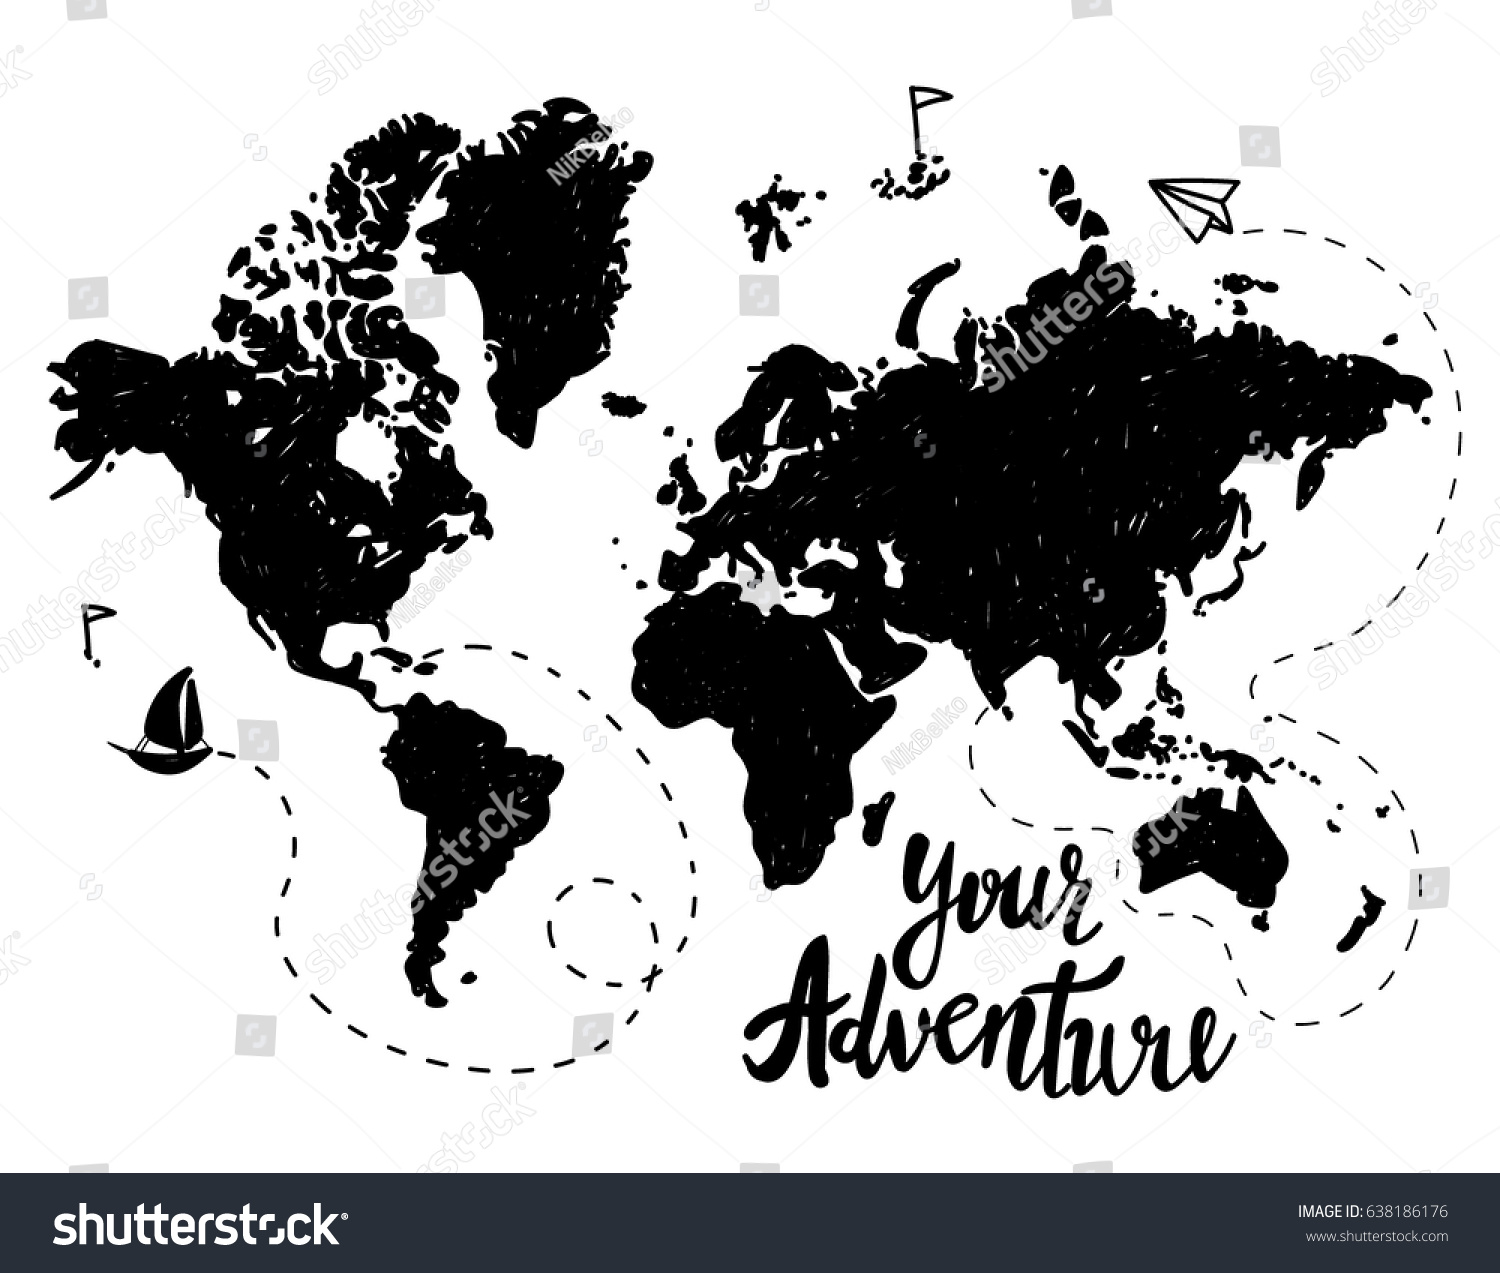 Your adventure drawing by hand childrens vector de stock638186176 your adventure drawing by hand childrens drawing world map geographical map gumiabroncs Gallery